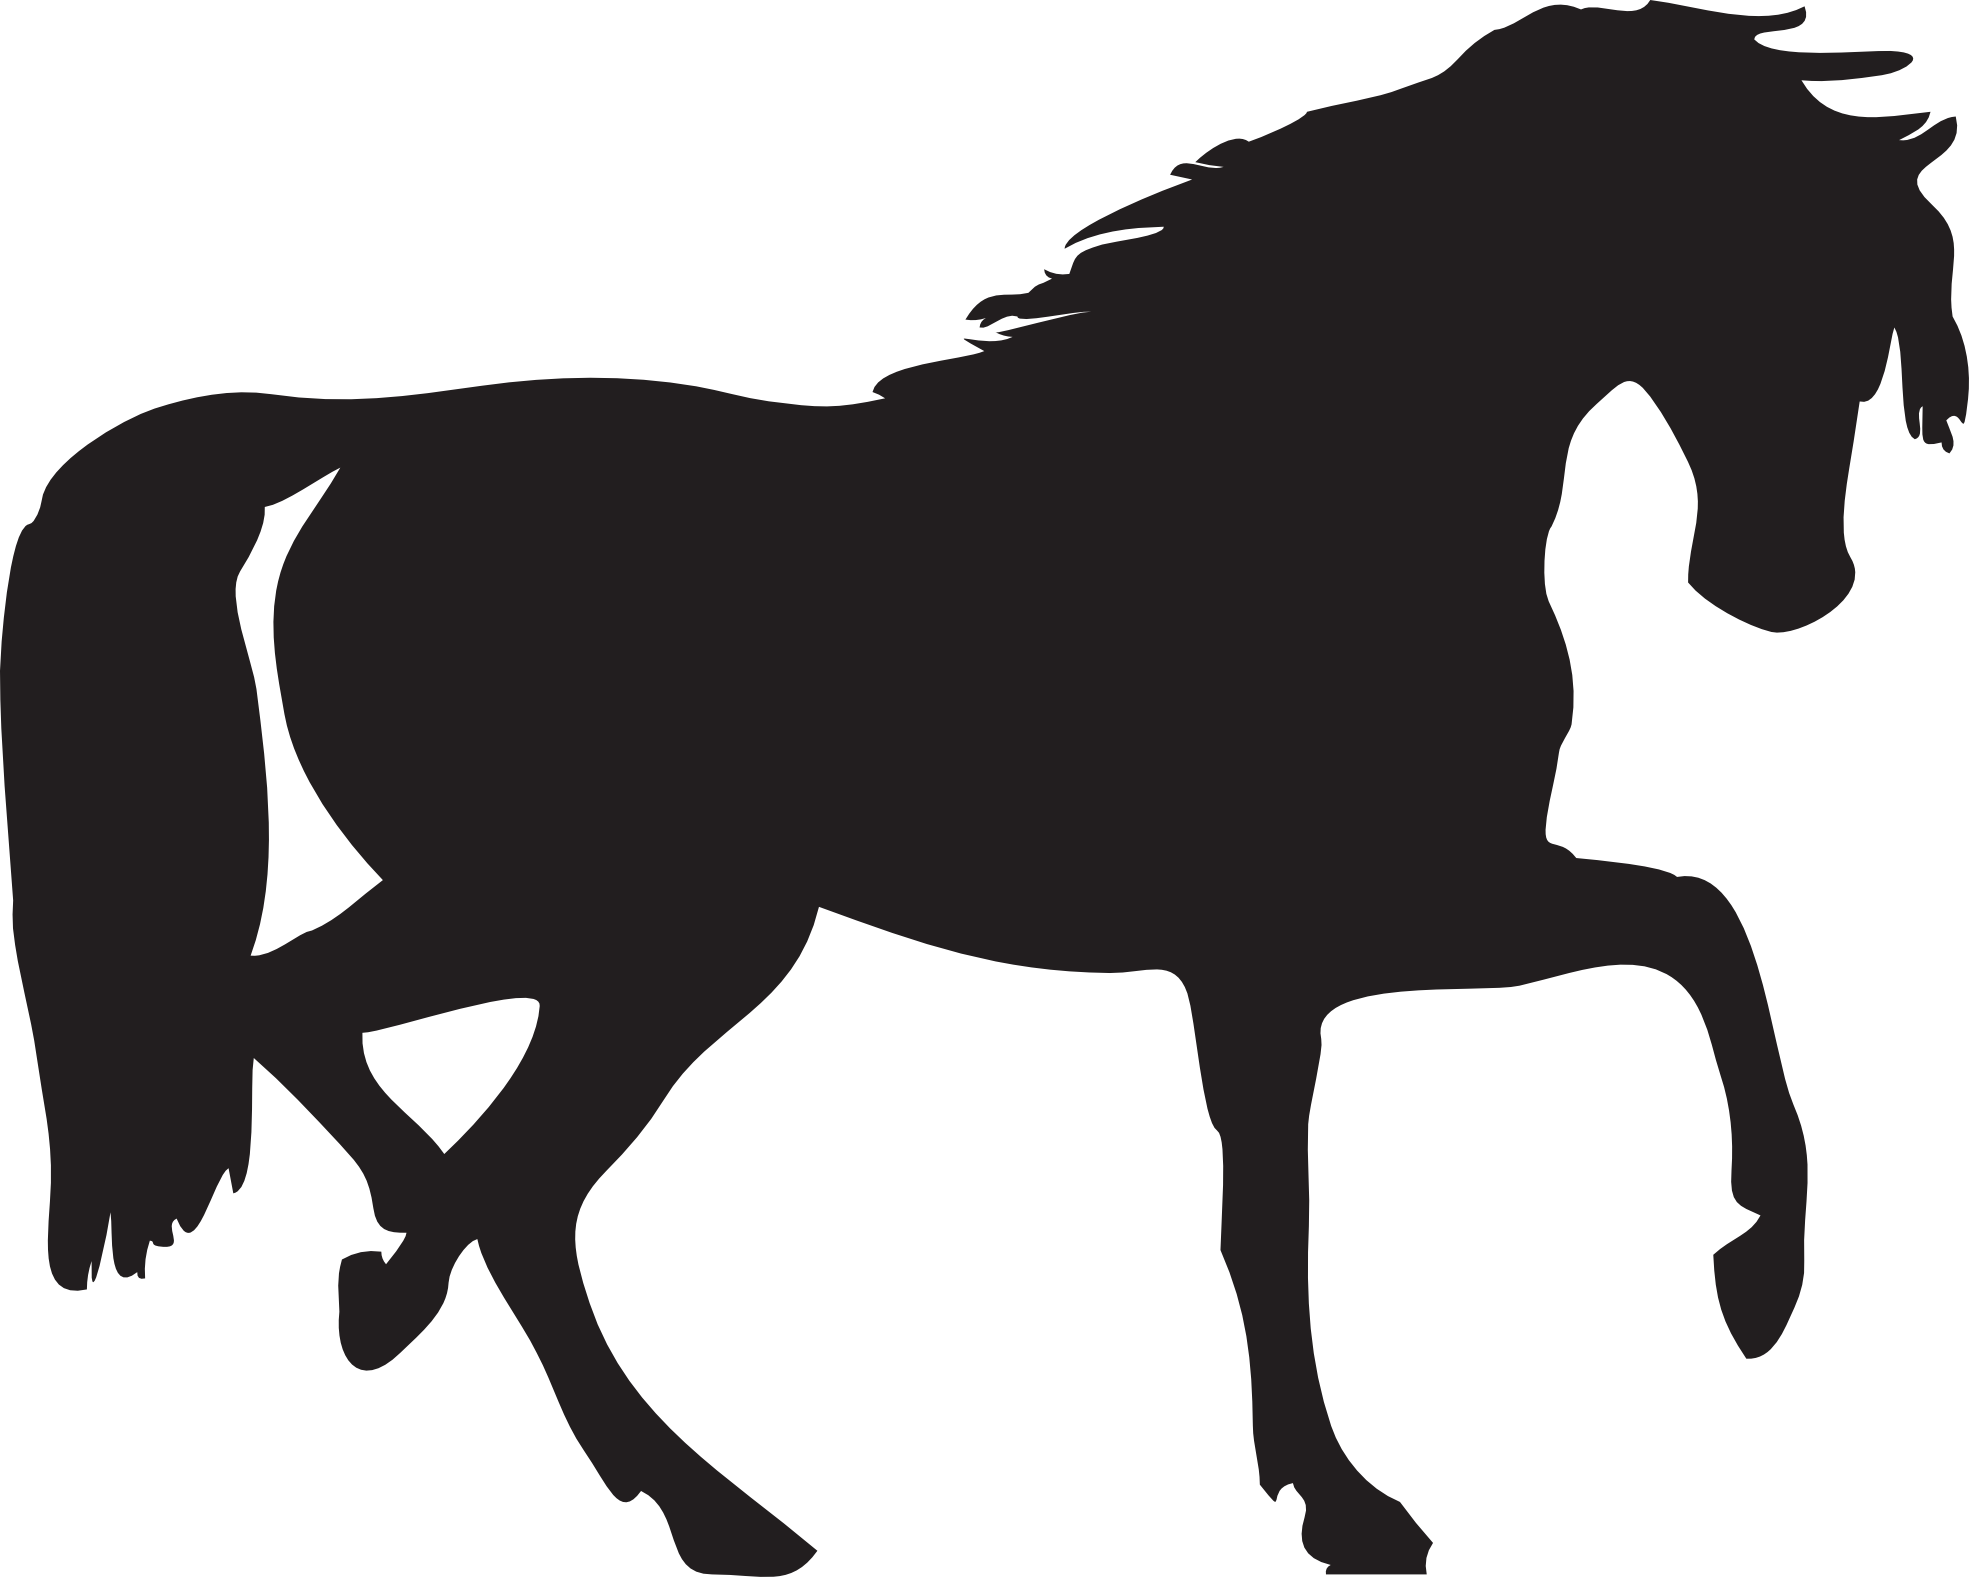 1969x1577 Foal Png Black And White Transparent Png Images. Pluspng